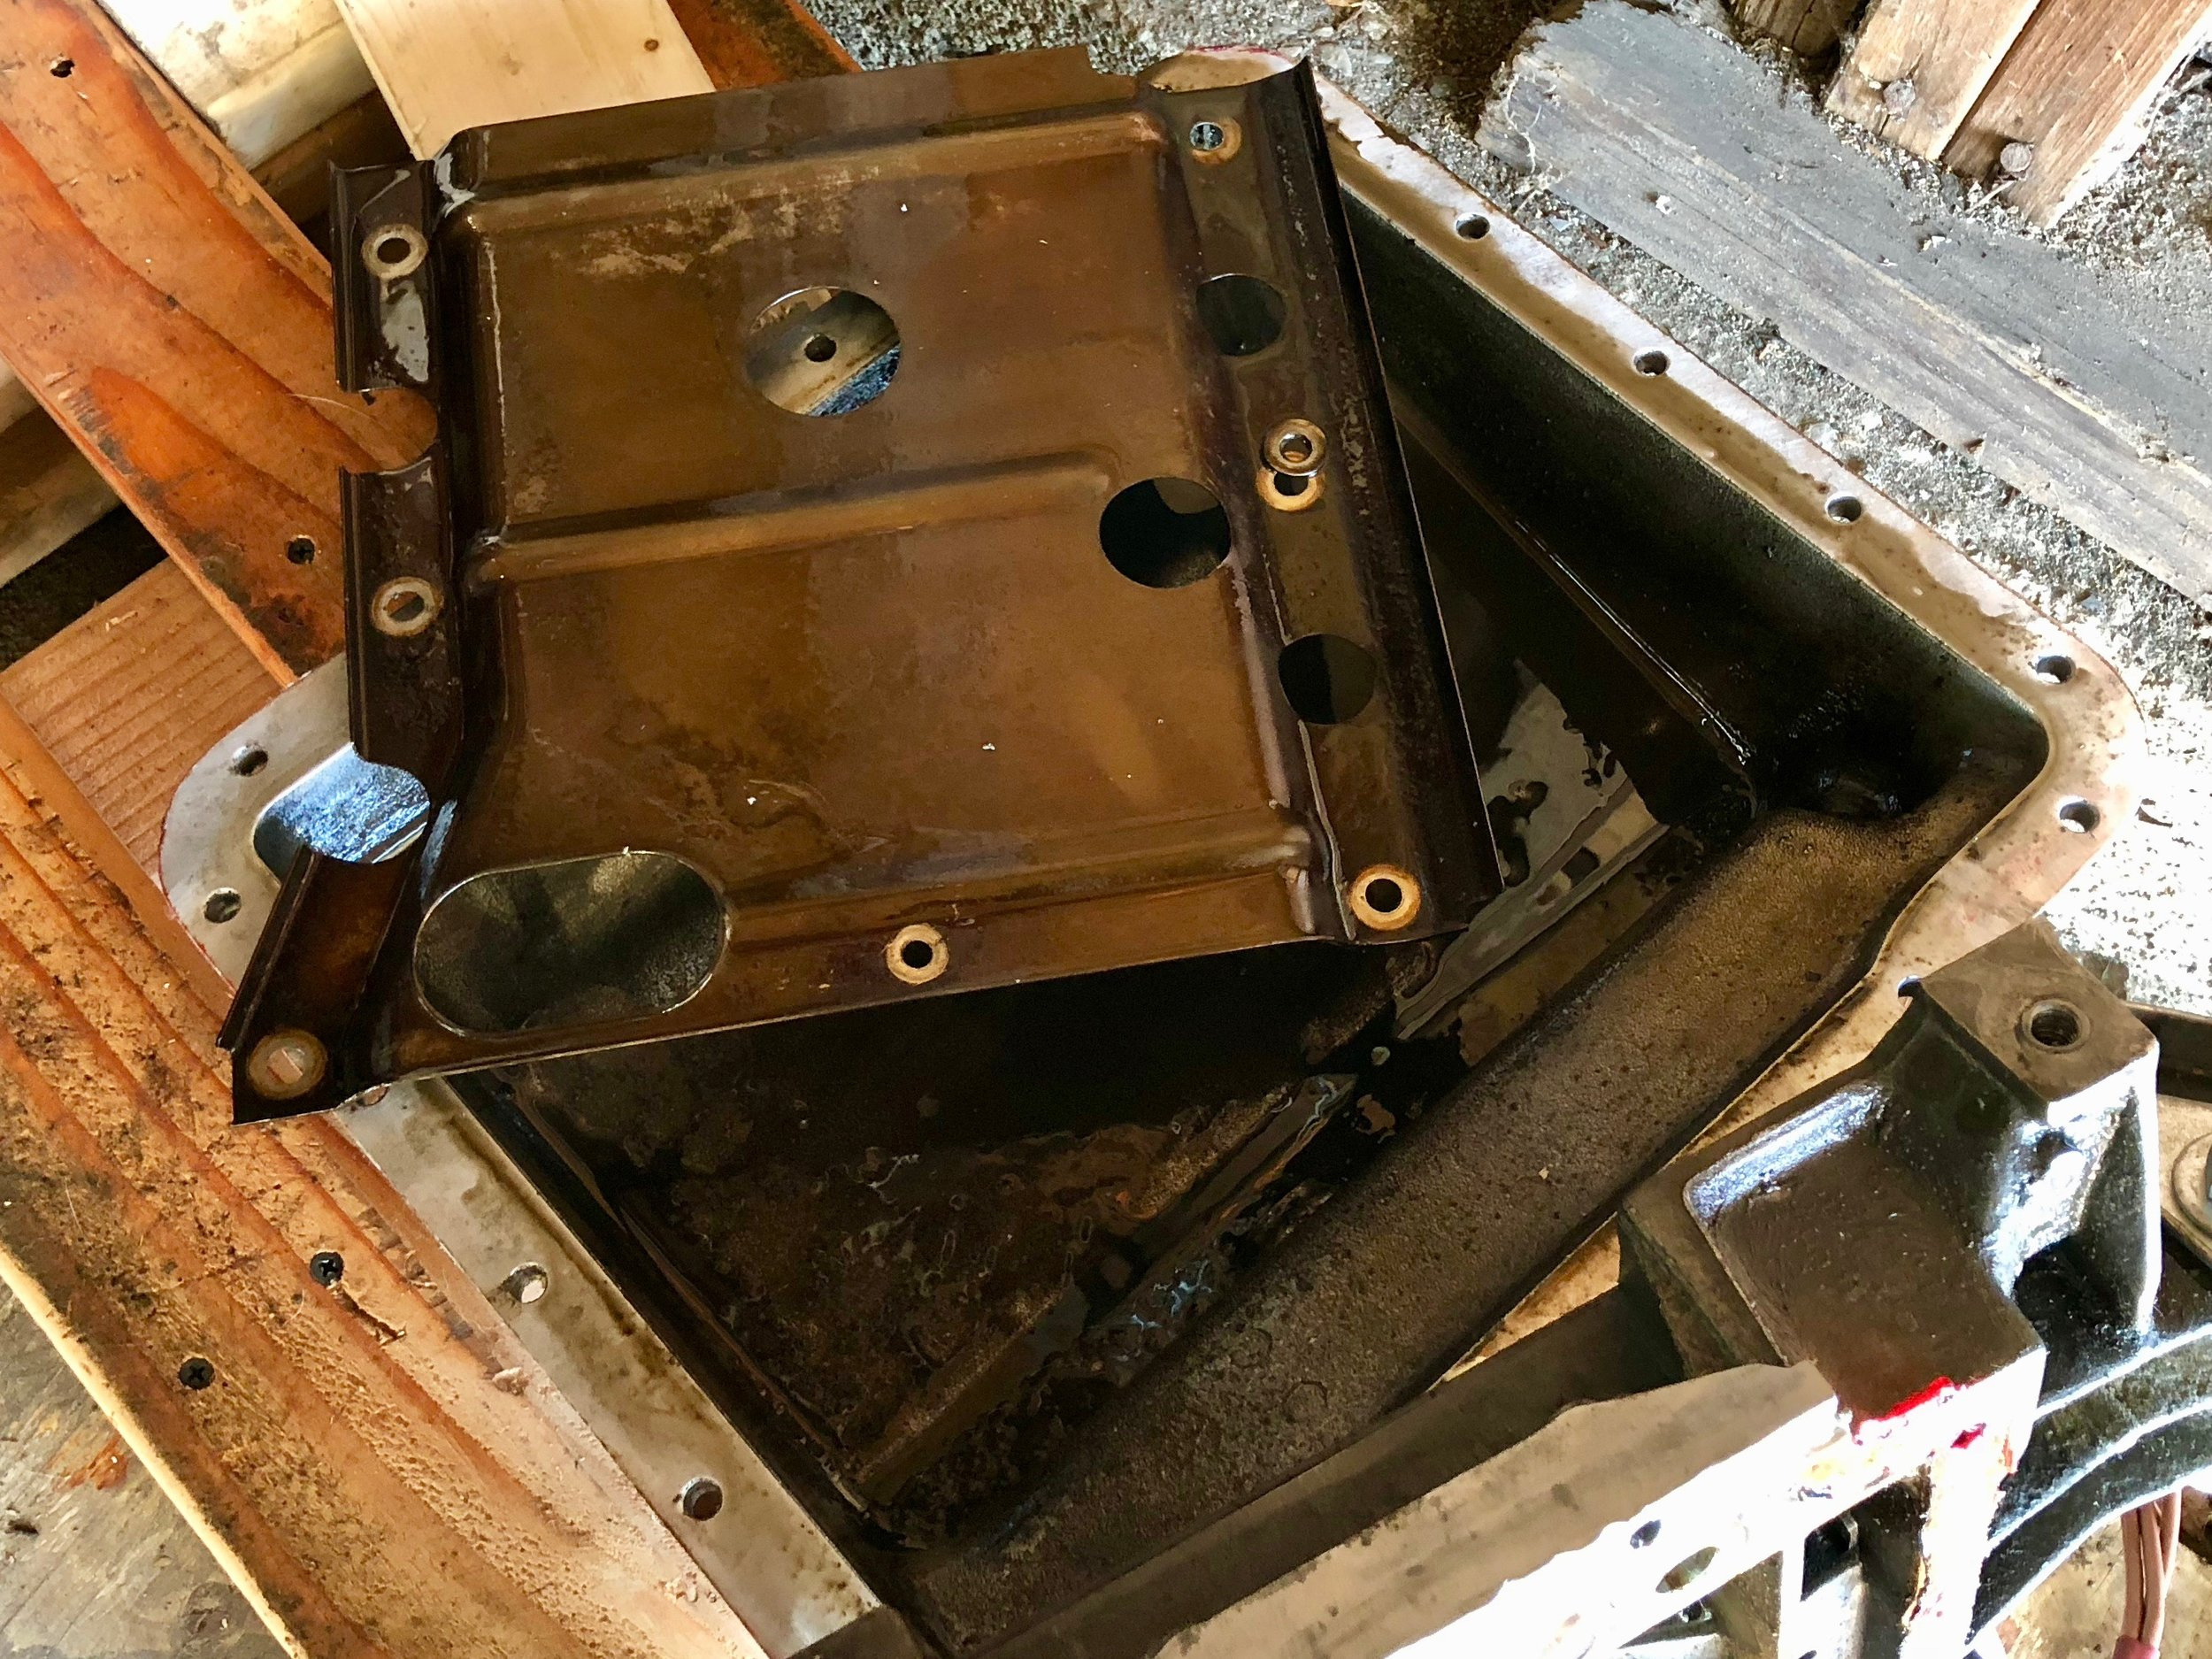 The baffle and pan soaked with oil, proving that there was oil in the engine -- it just wasn't moving out of the pan.